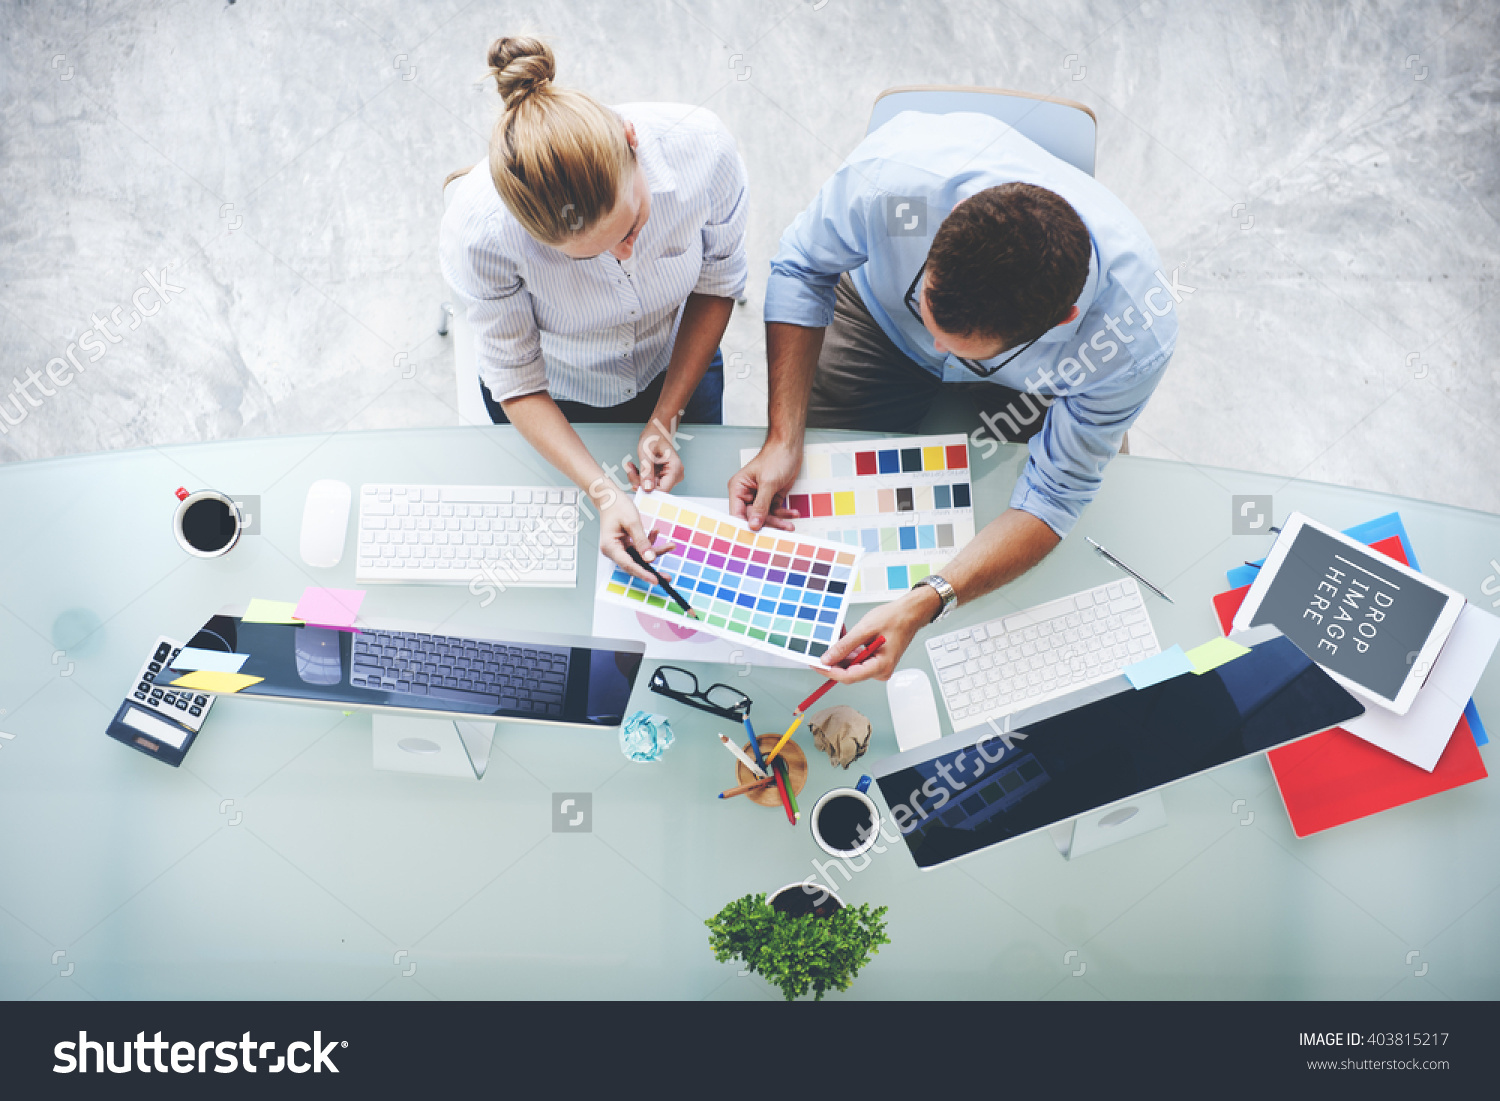 A stock image that I could have used